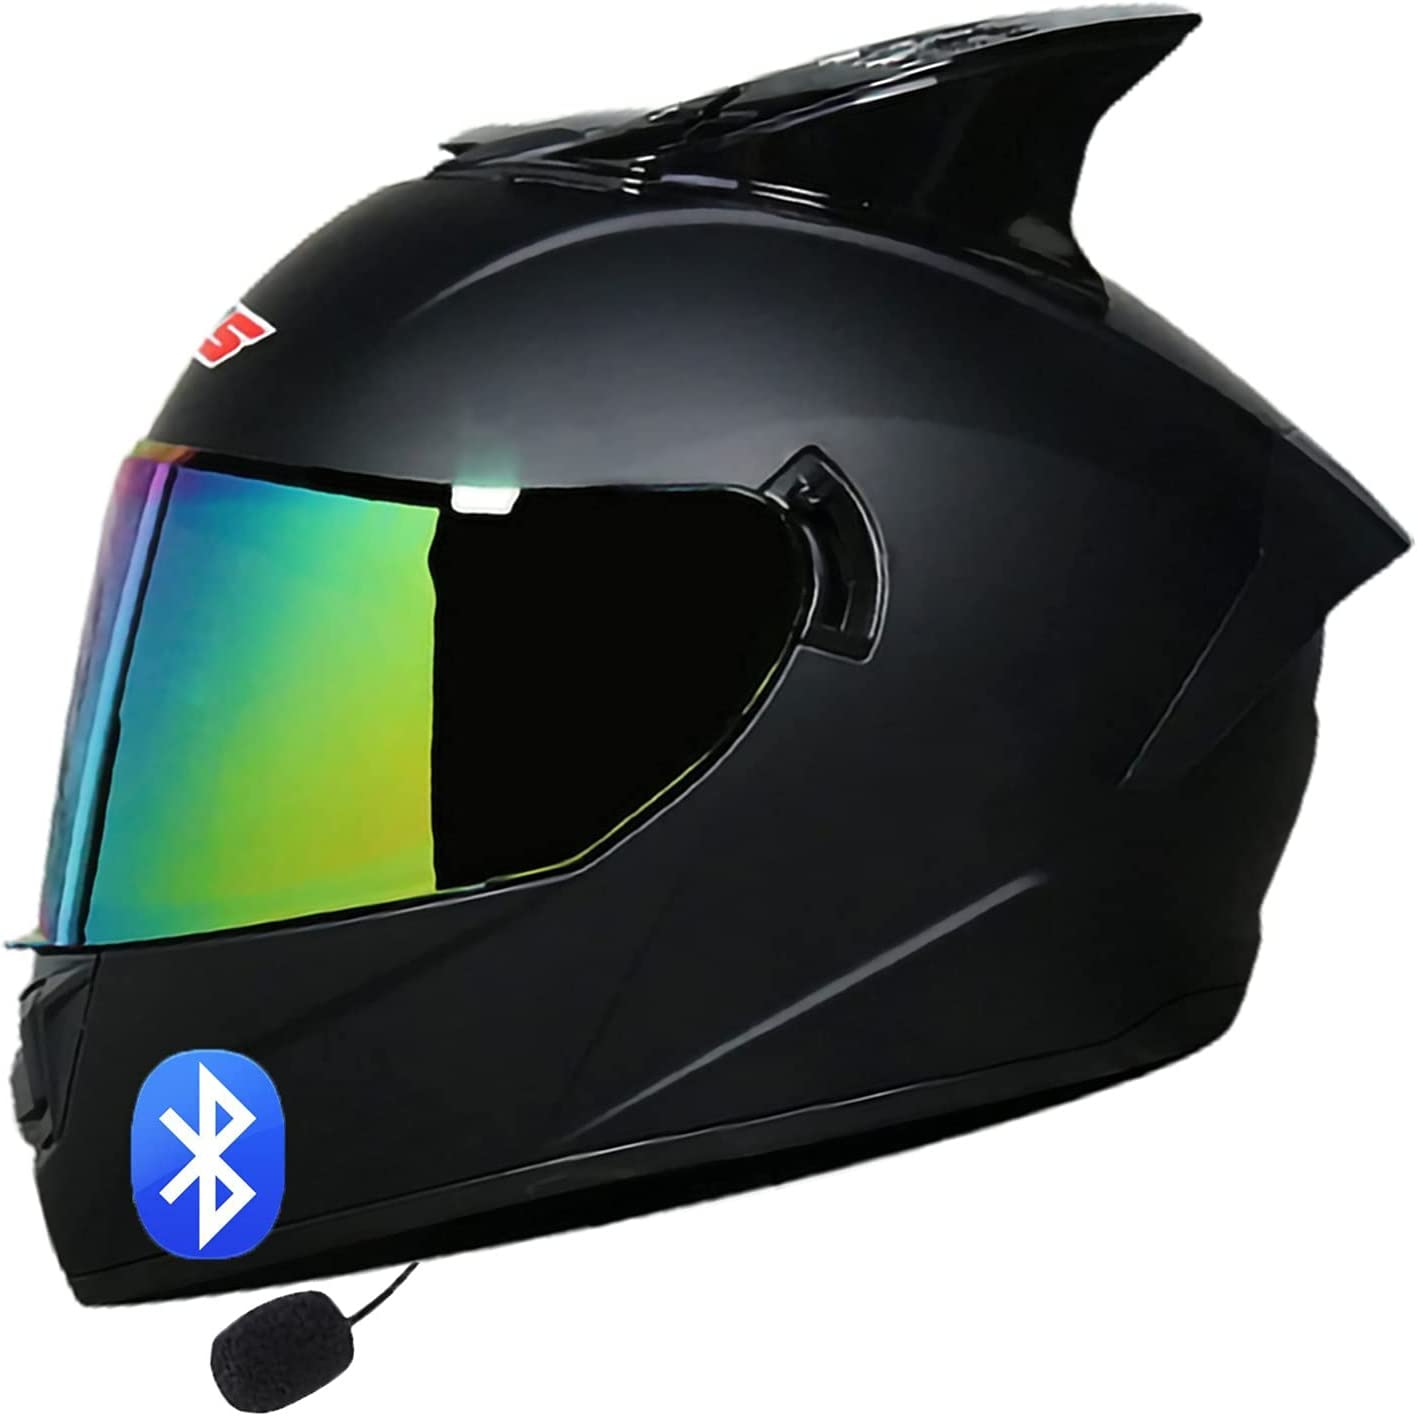 sale QJWM Motorbike Full Face Helmet DOT Approved Bluetooth Shipping included ECE Integ